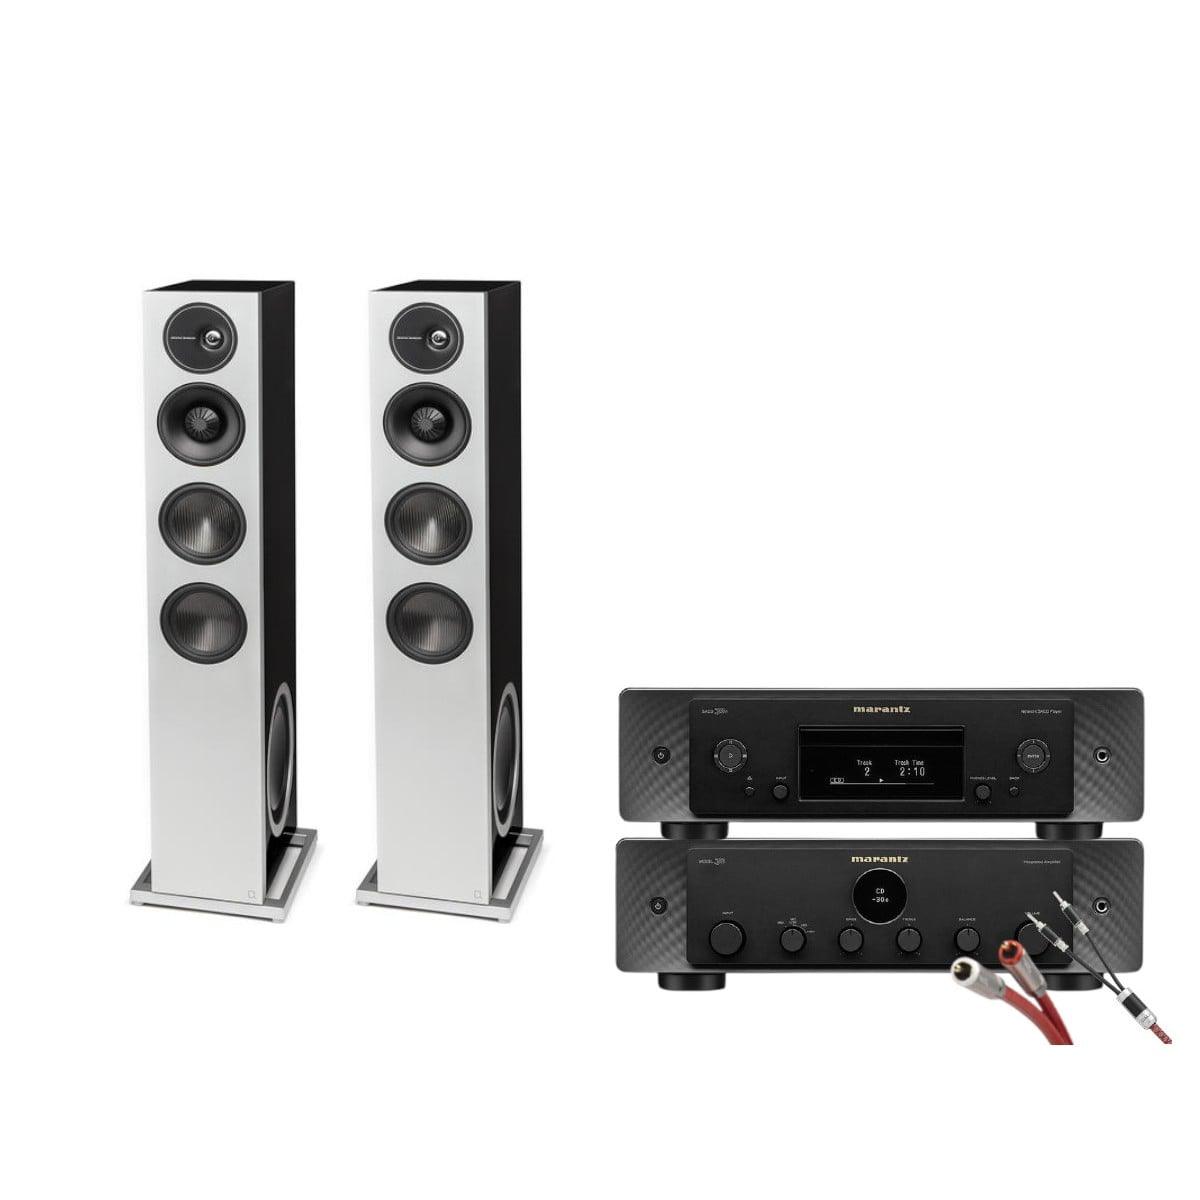 Marantz MODEL 30 + SACD 30n + Definitive Technology Demand 17 + kábelek